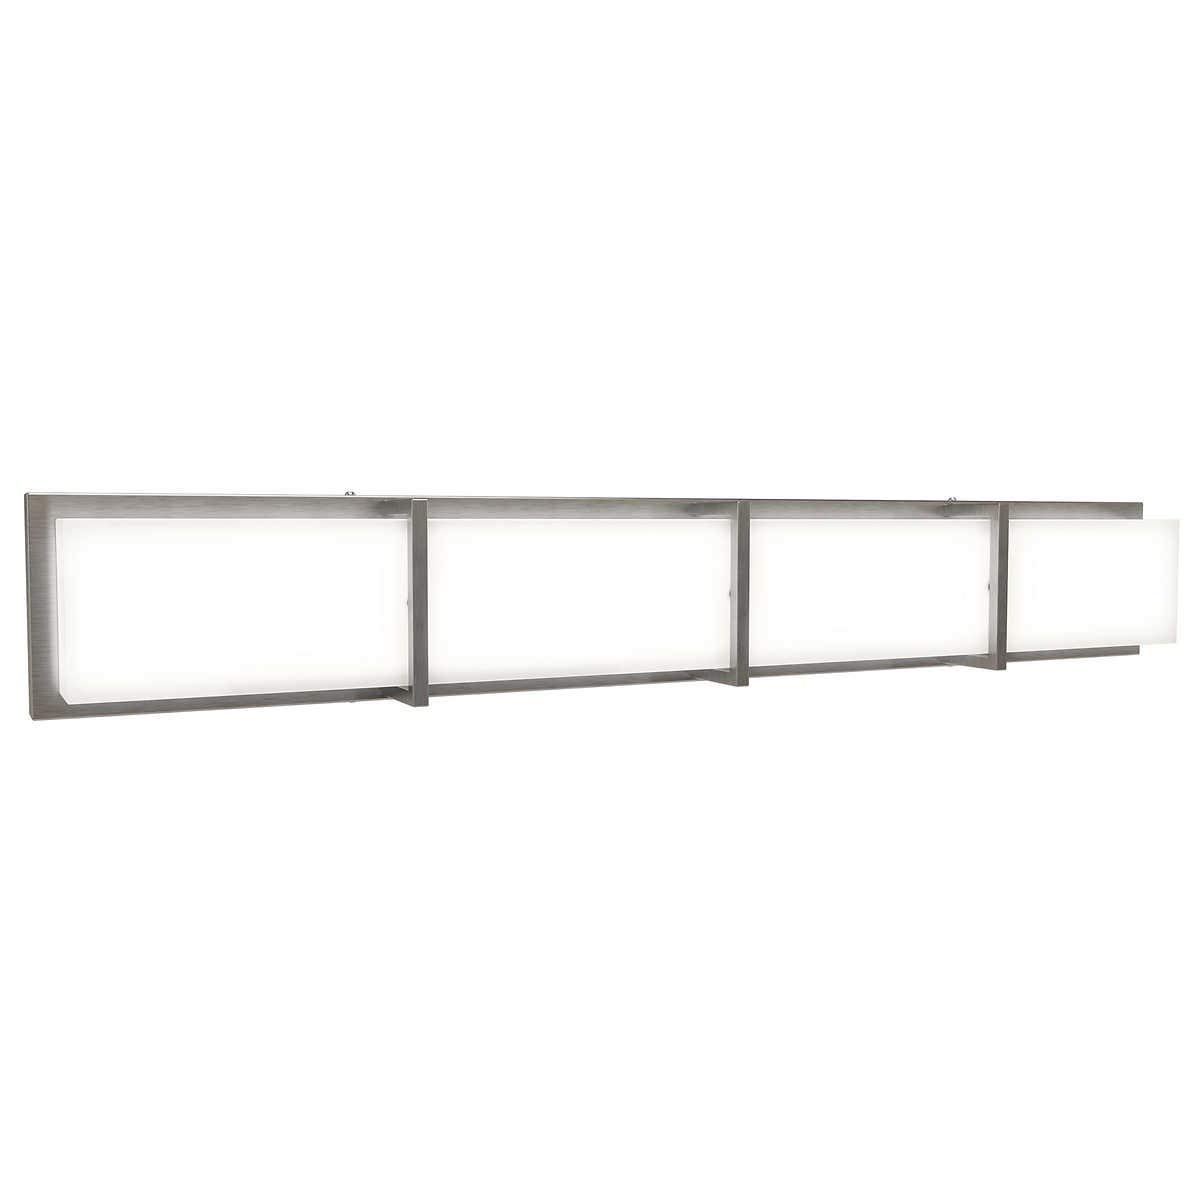 Bathroom Vanity Sink Subway 35 LED Light Dimmable Strip in Brushed Nickel Finish Clear Shades Chrome